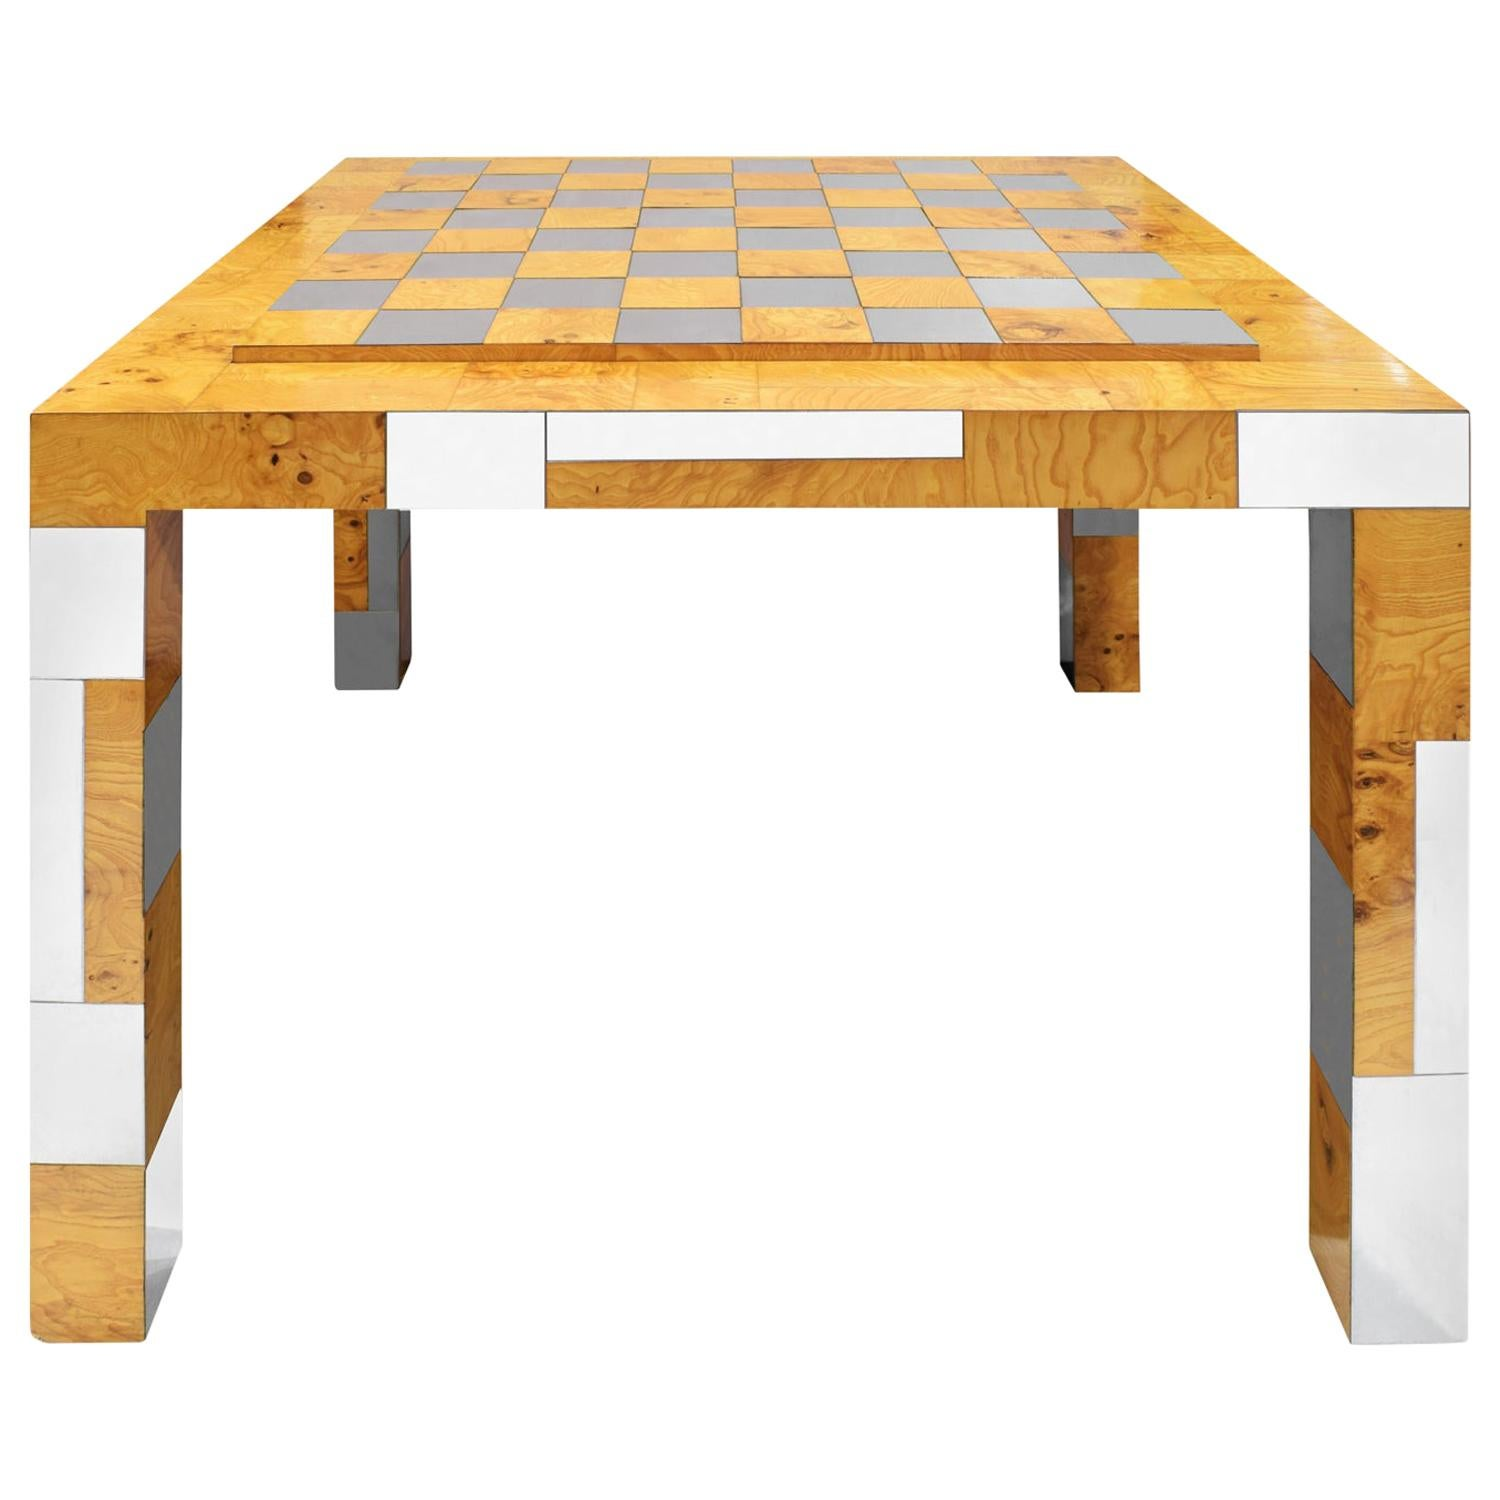 Paul Evans Rare Game Table in Walnut Burl and Chrome, 1970s 'Signed'